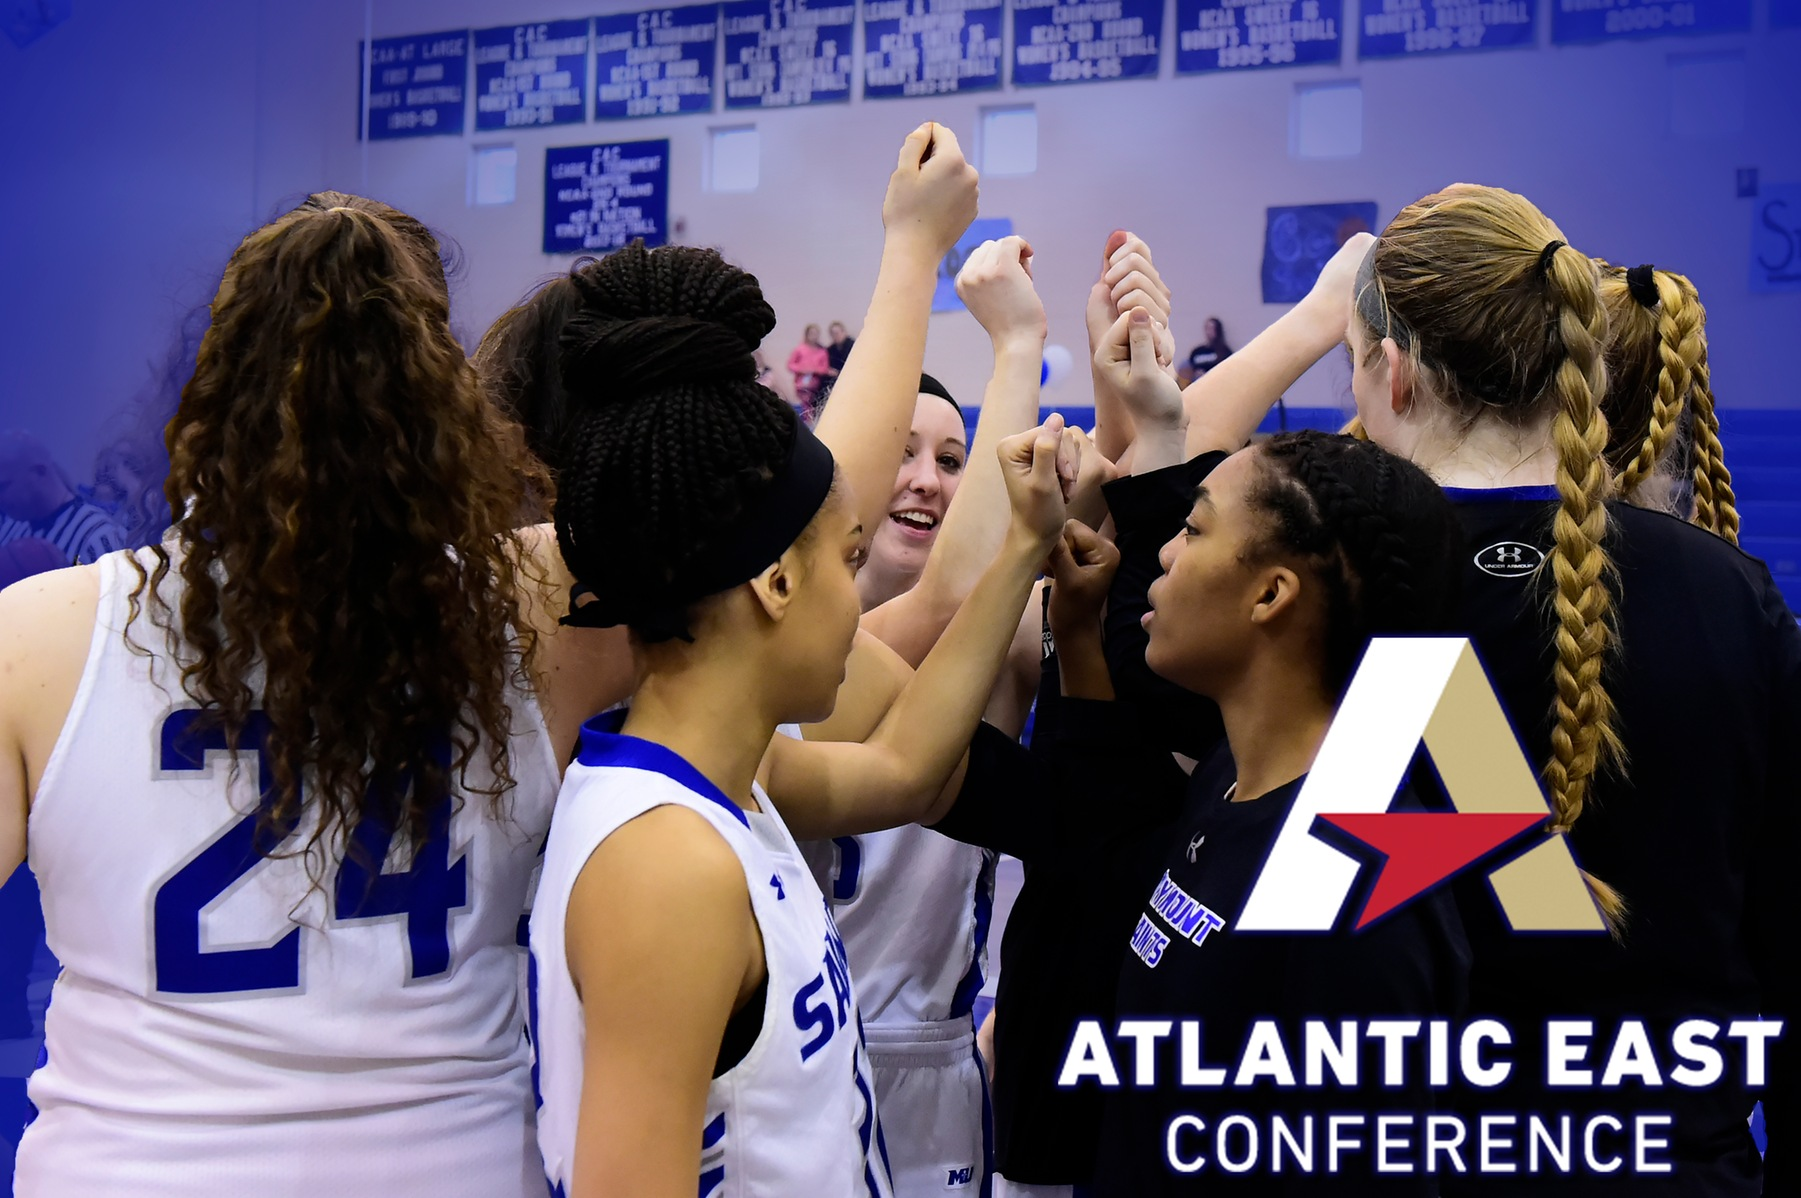 PREVIEW: Top-seeded Women's Basketball Hosts Mighty Macs in Atlantic East Semifinals Tilt